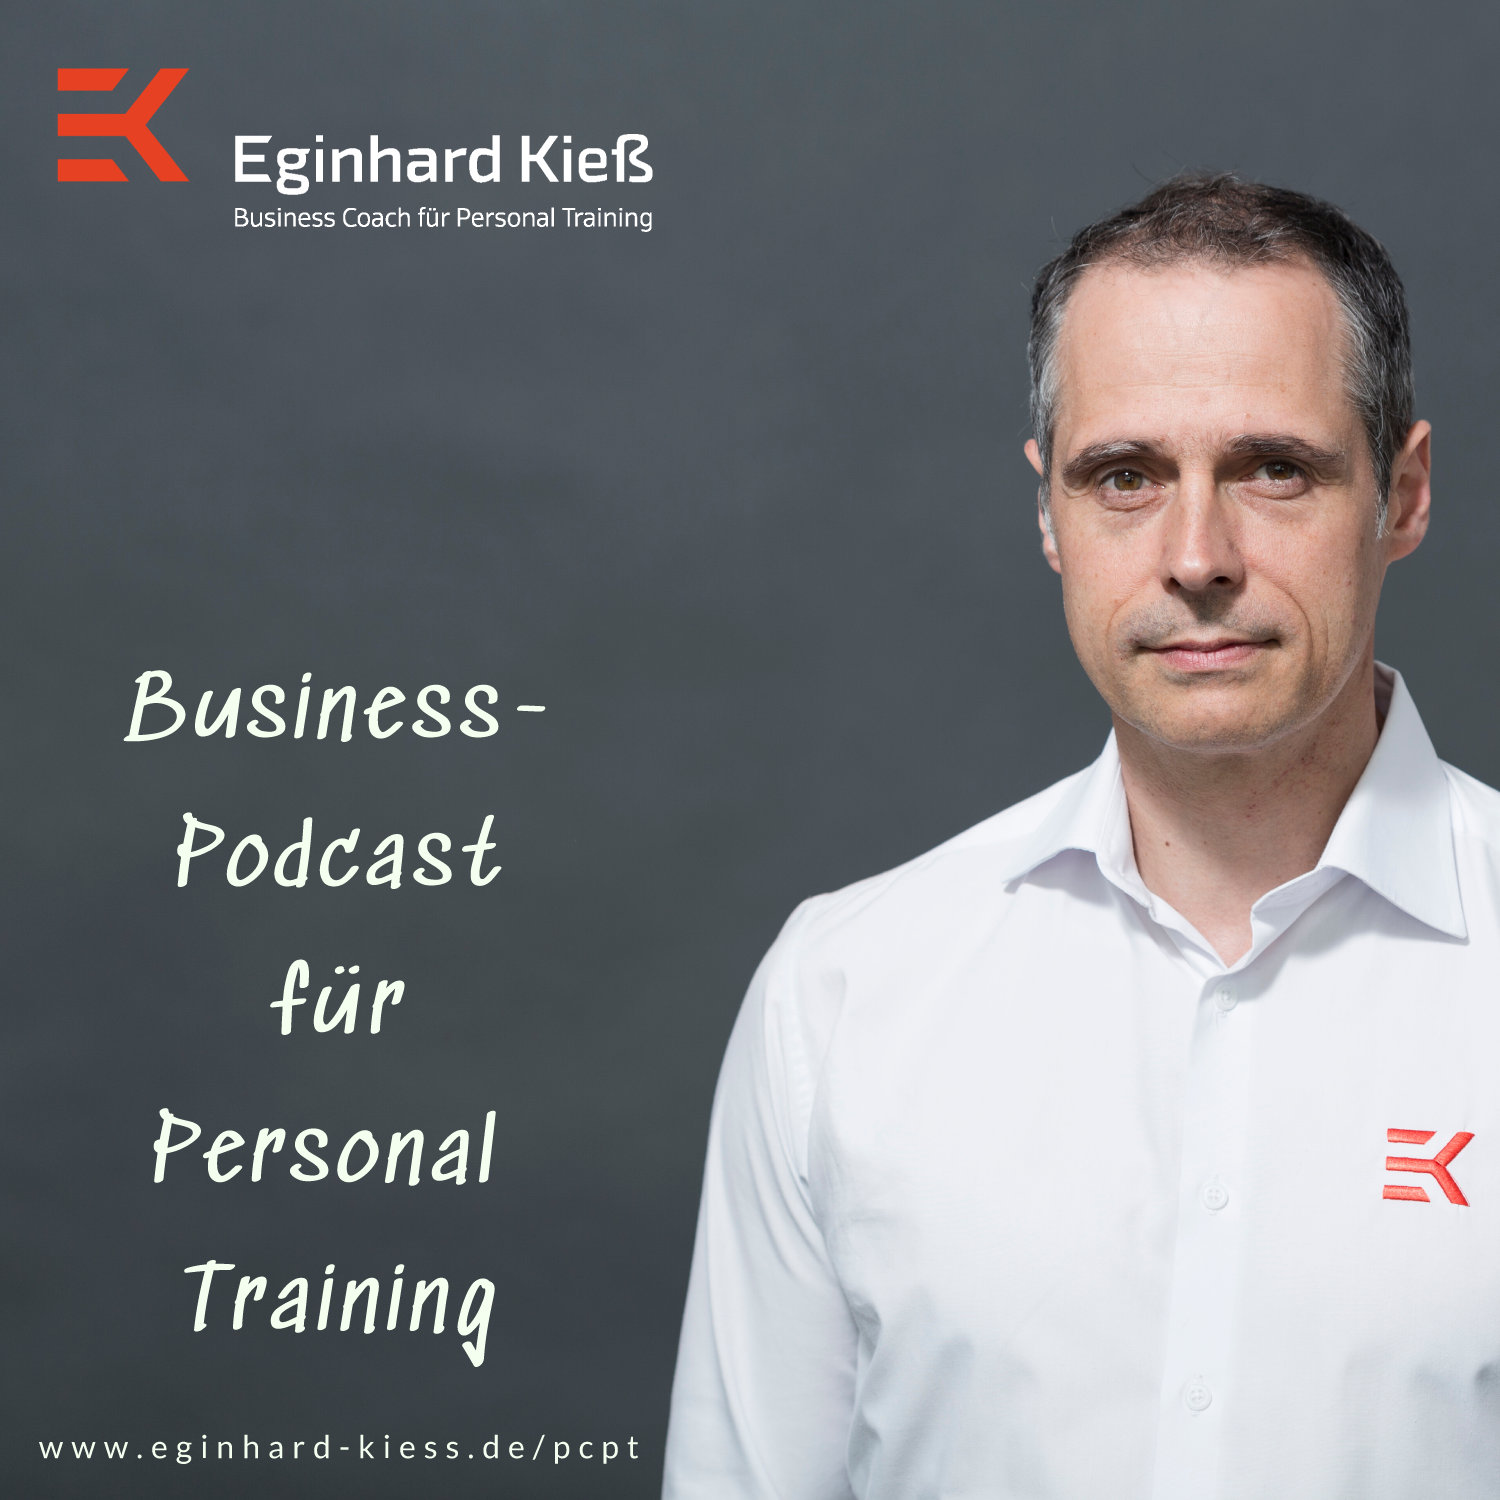 Business-Podcast für Personal Training